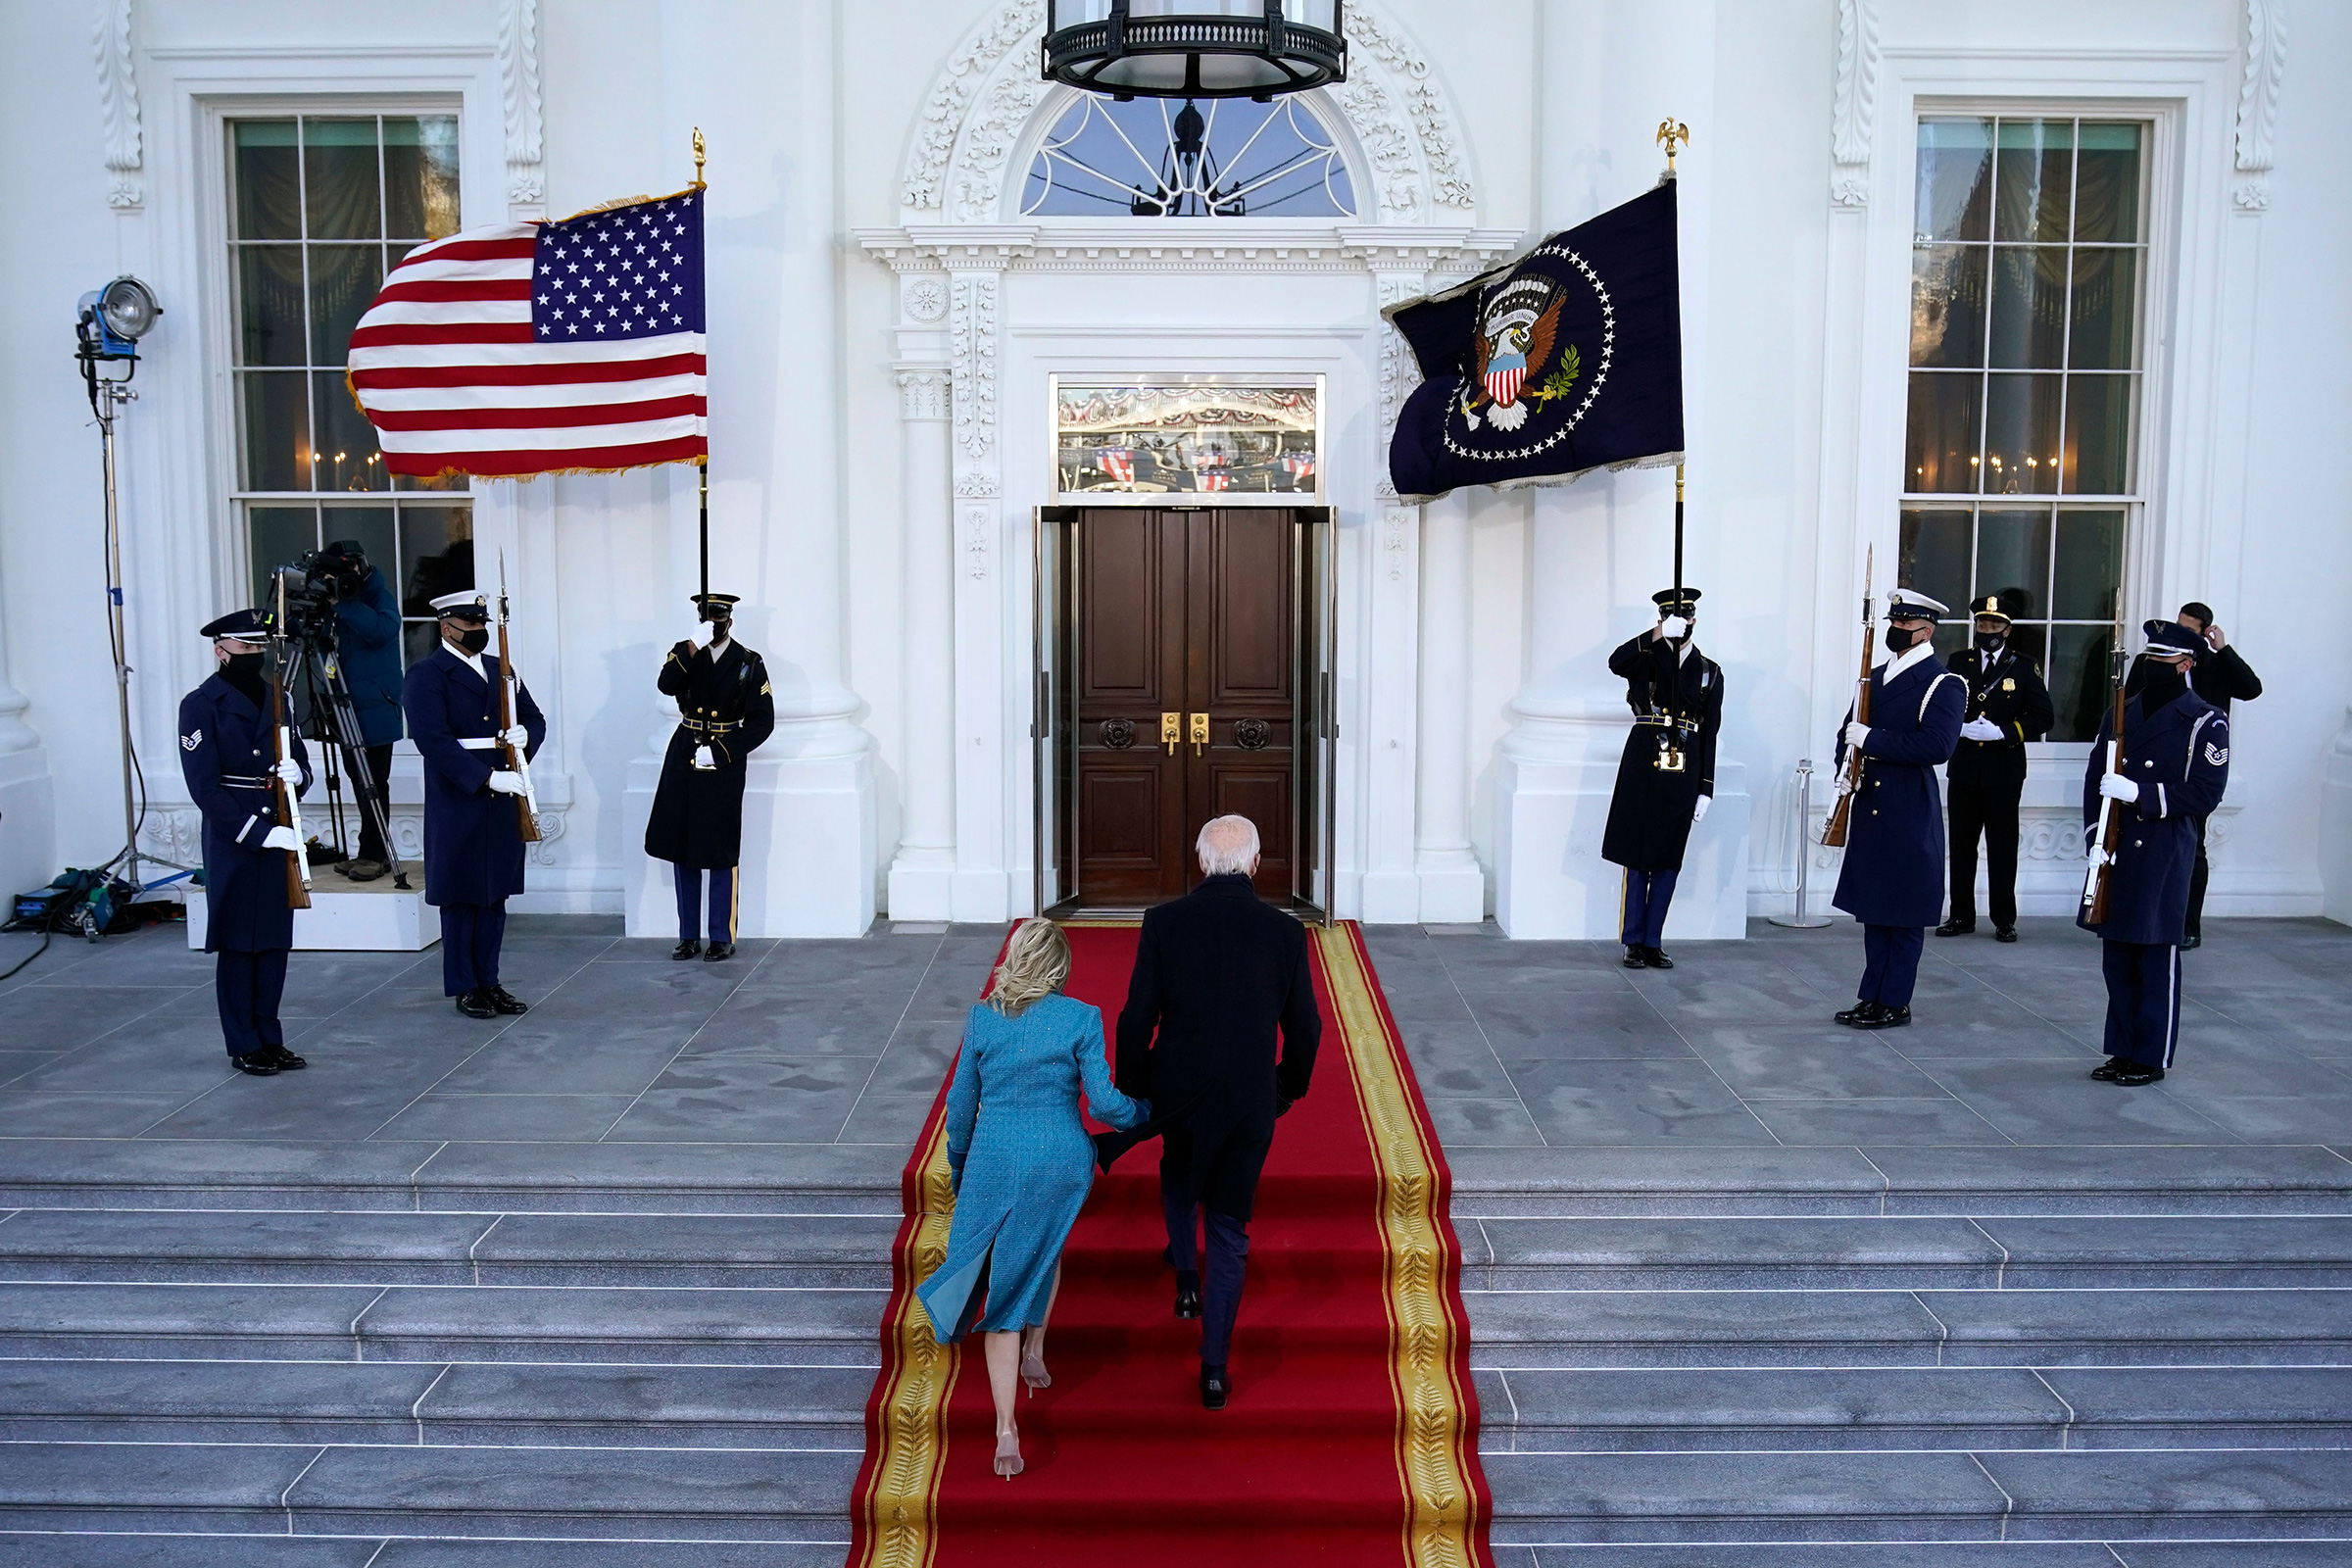 President Joe Biden and first lady Dr. Jill Biden walk up the stairs as they arrive at the North Portico of the White House.